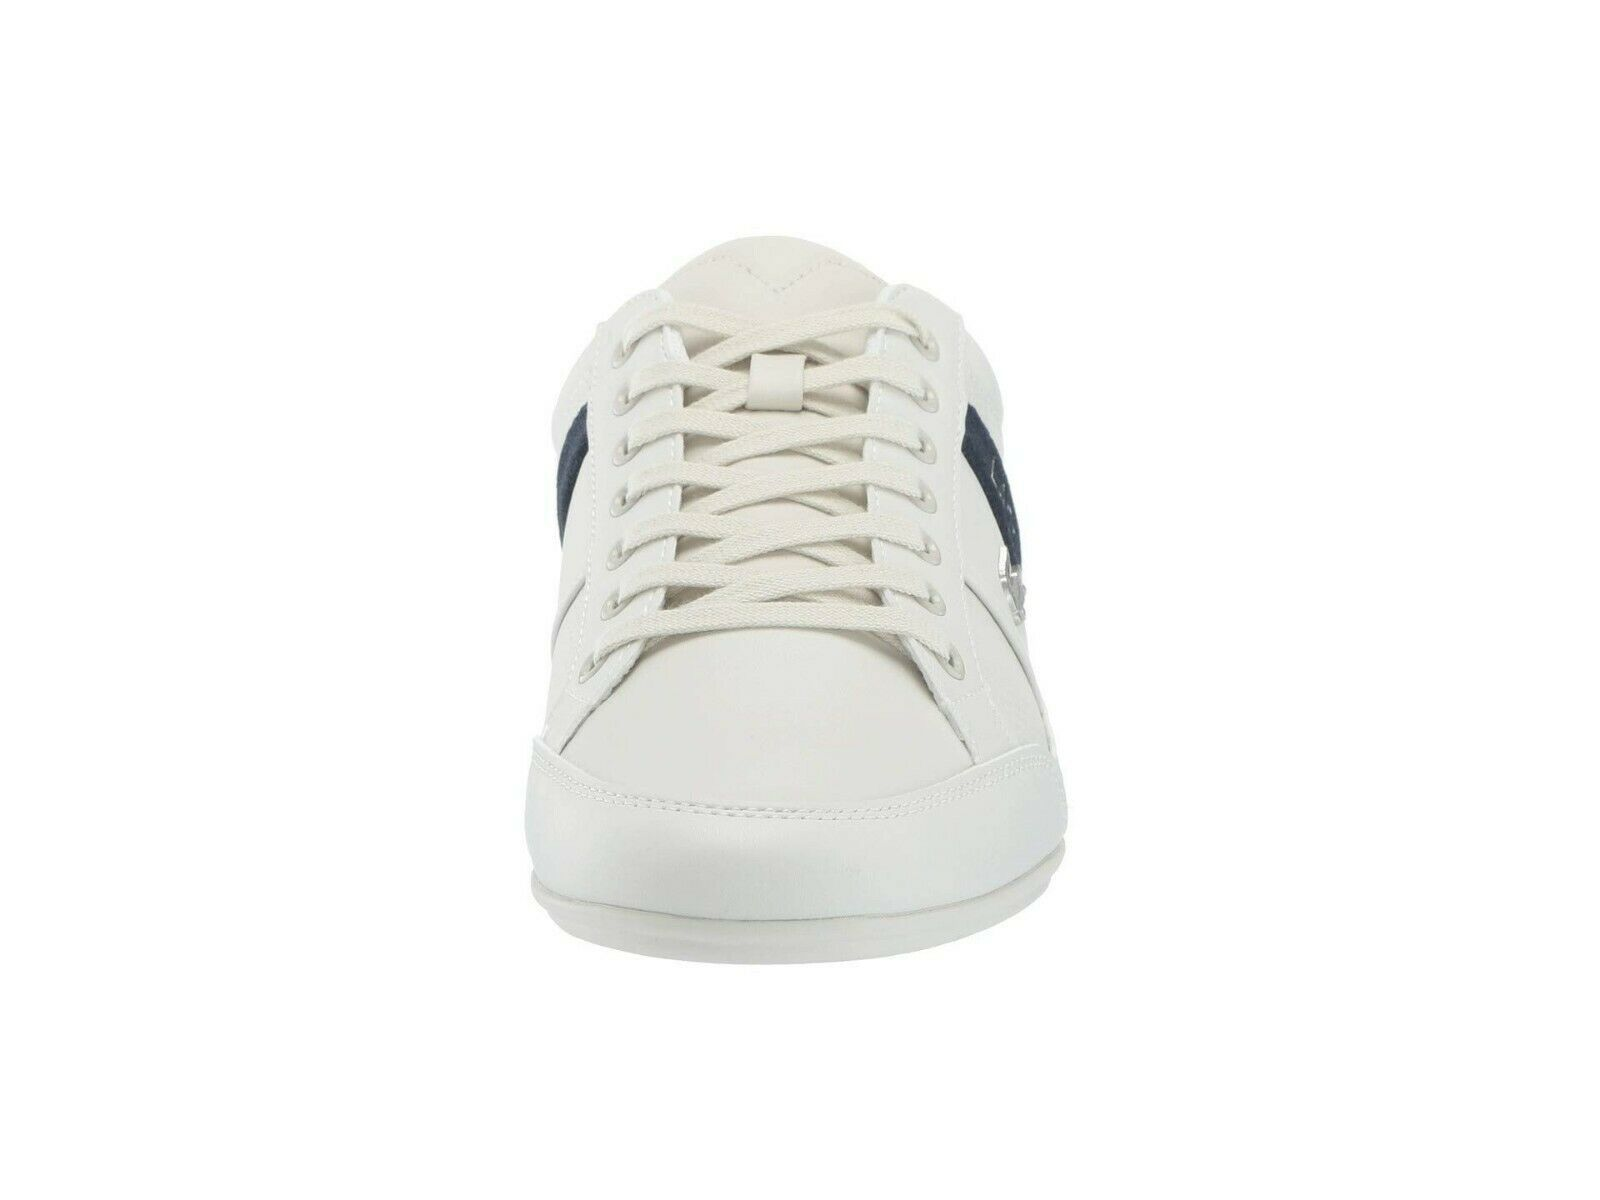 Lacoste Men's Chaymon 119 1 U CMA Leather Casual Sneakers Off White Navy